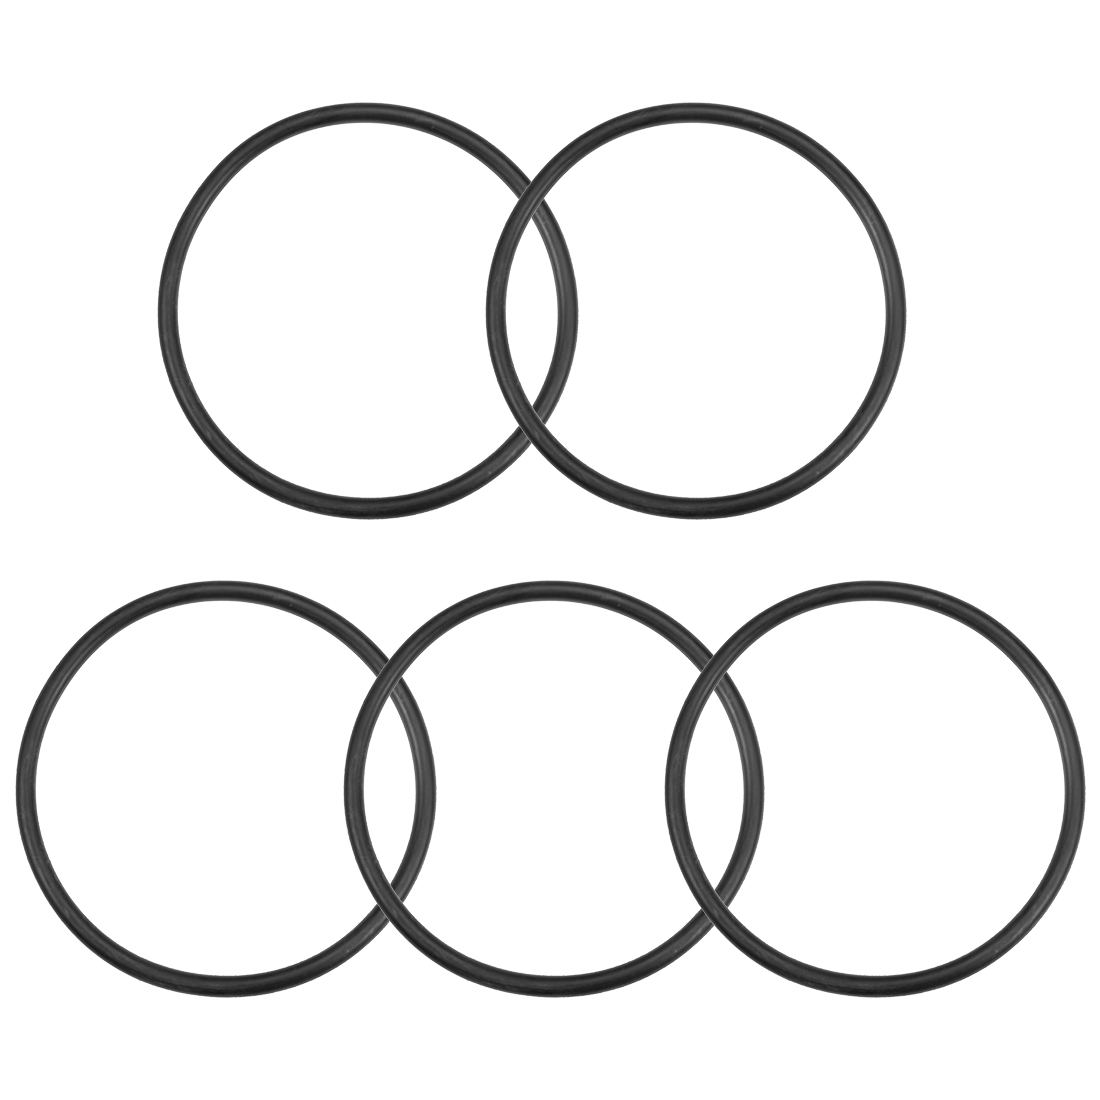 O-Rings Nitrile Rubber 98.6mm x 110mm x 5.7mm Round Seal Gasket 5 Pcs